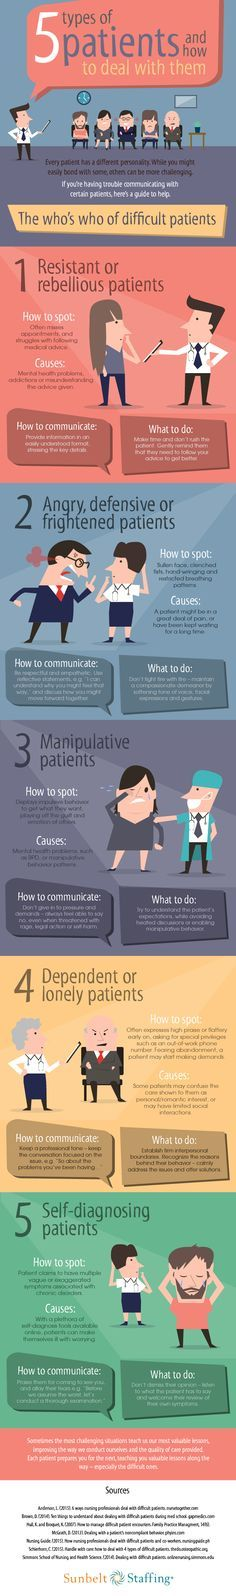 5 Types of Difficult Patients and How to Deal With Them #infographic #Healthcare…